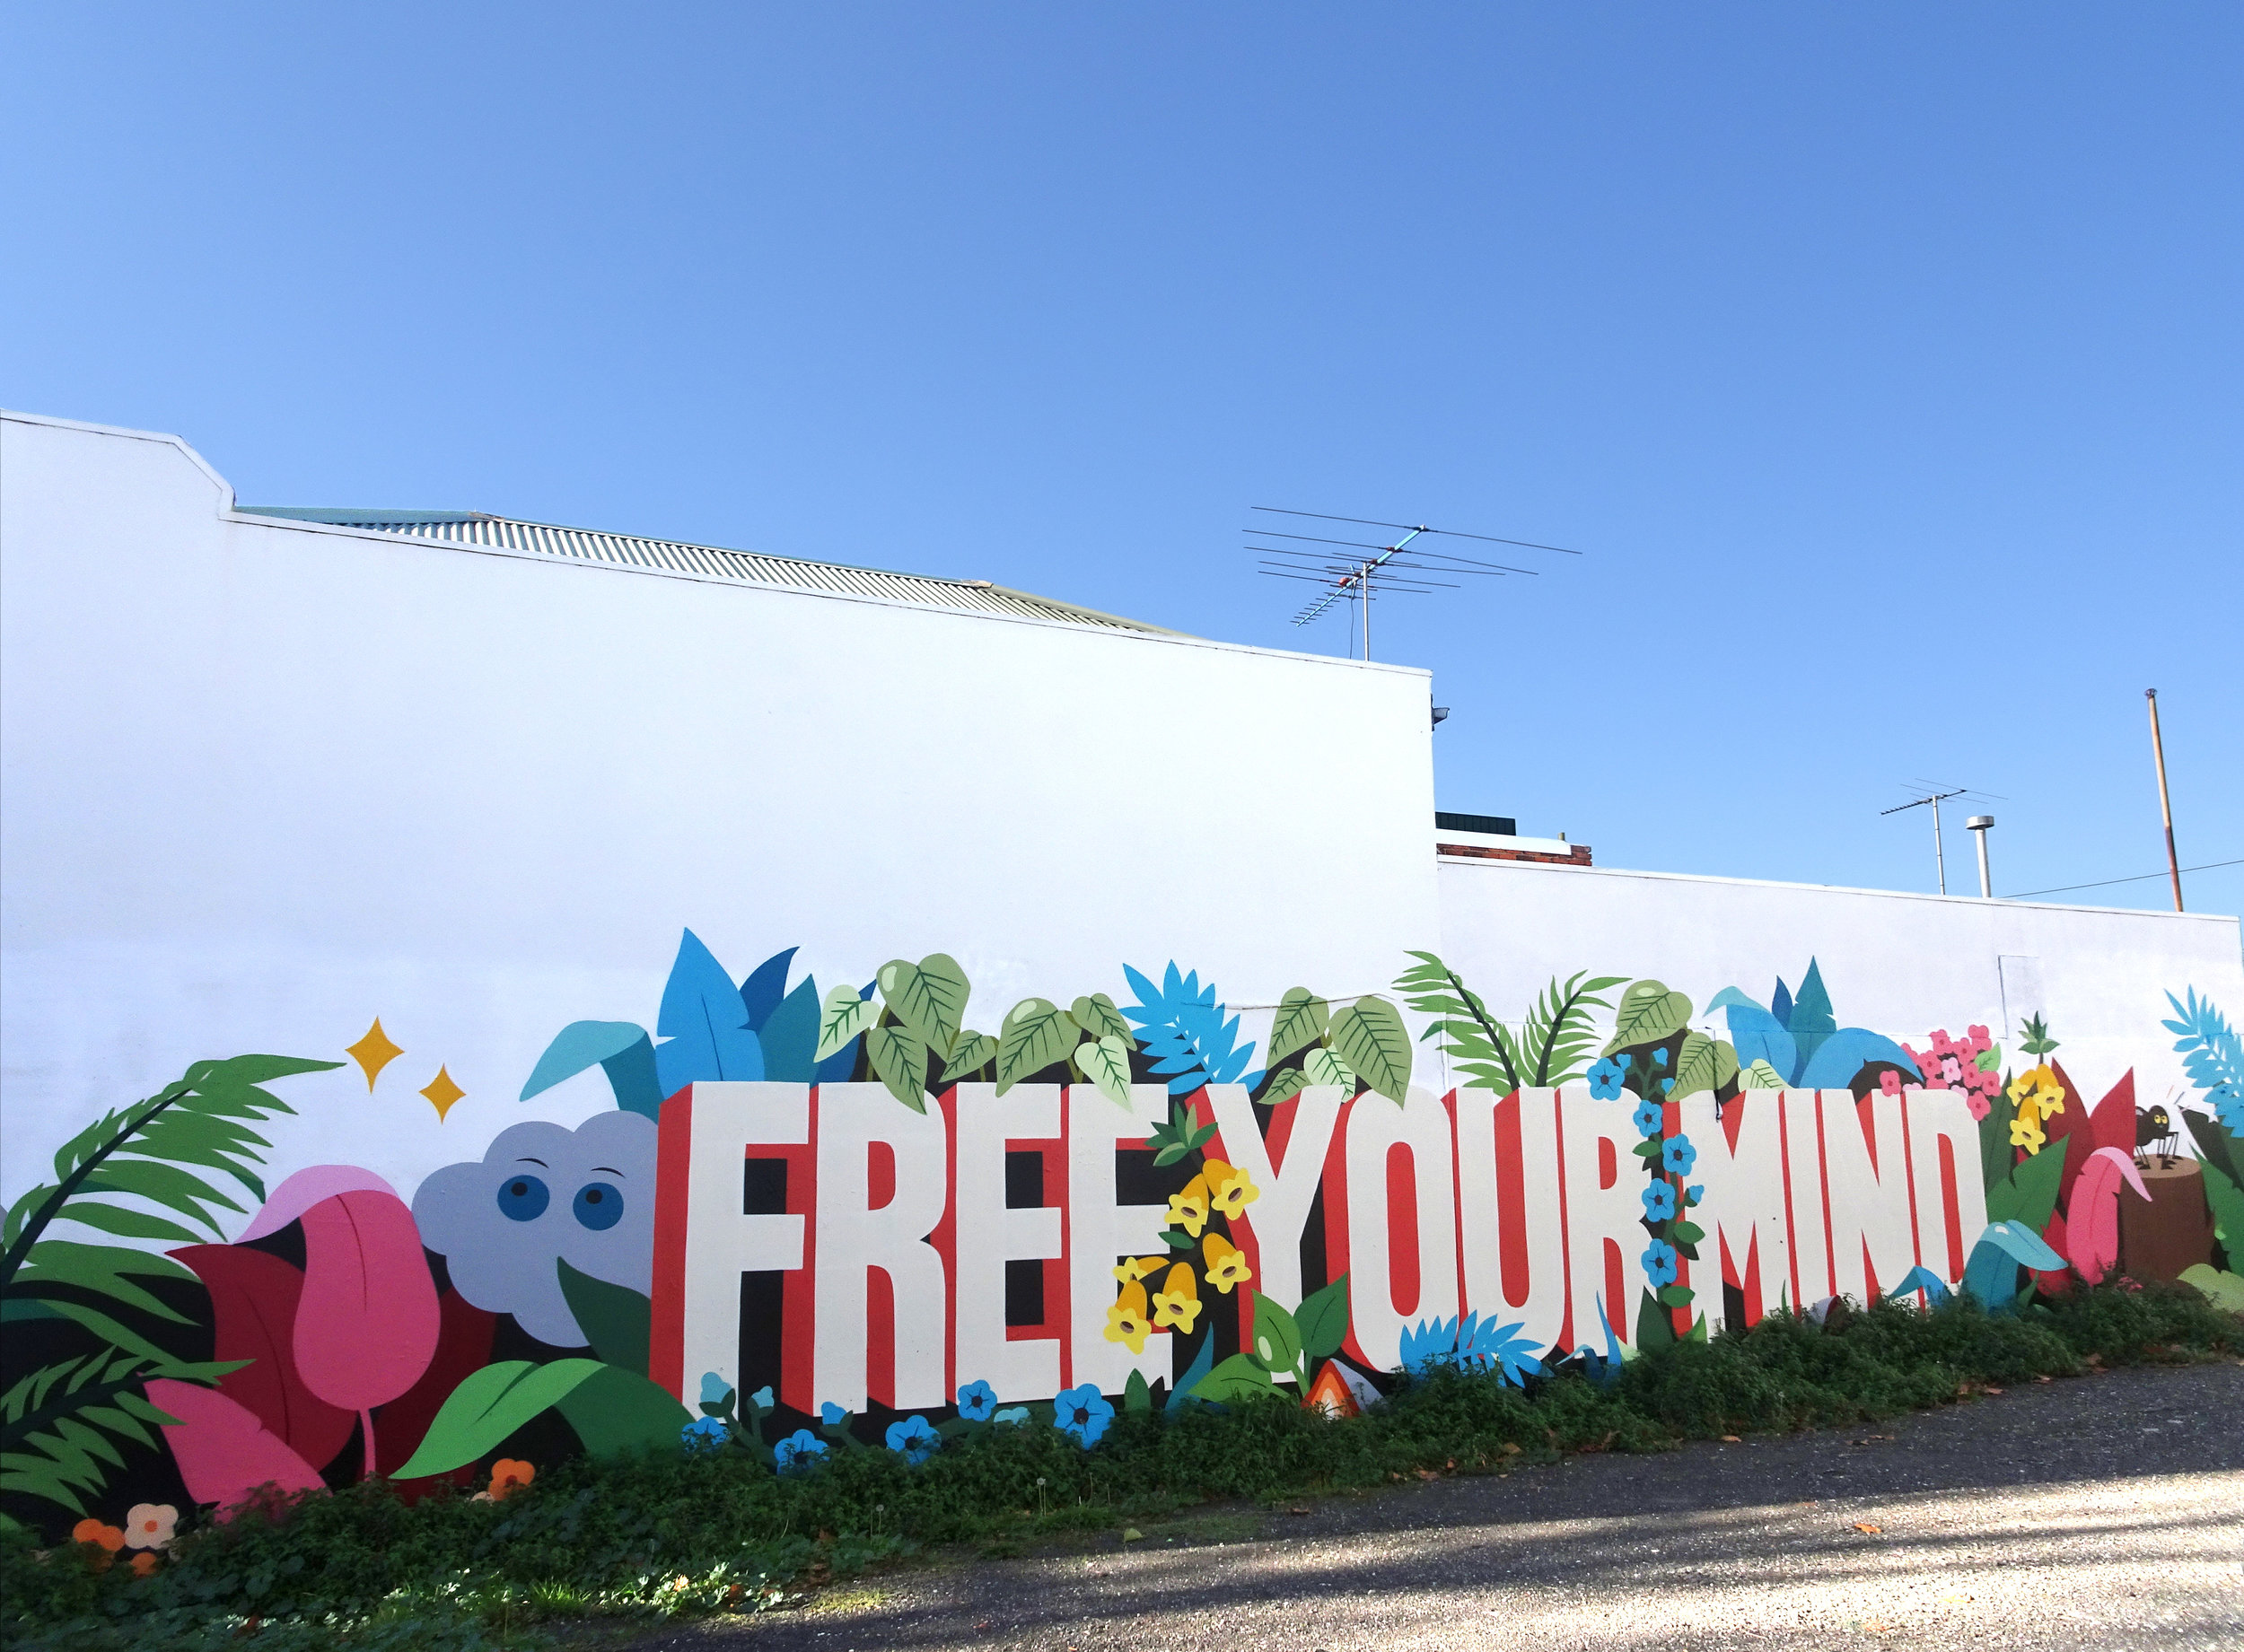 Photo by Lou Chamberlin. Mural by DabsMyla,  Free Your Mind,  Carlton, Melbourne, 2018